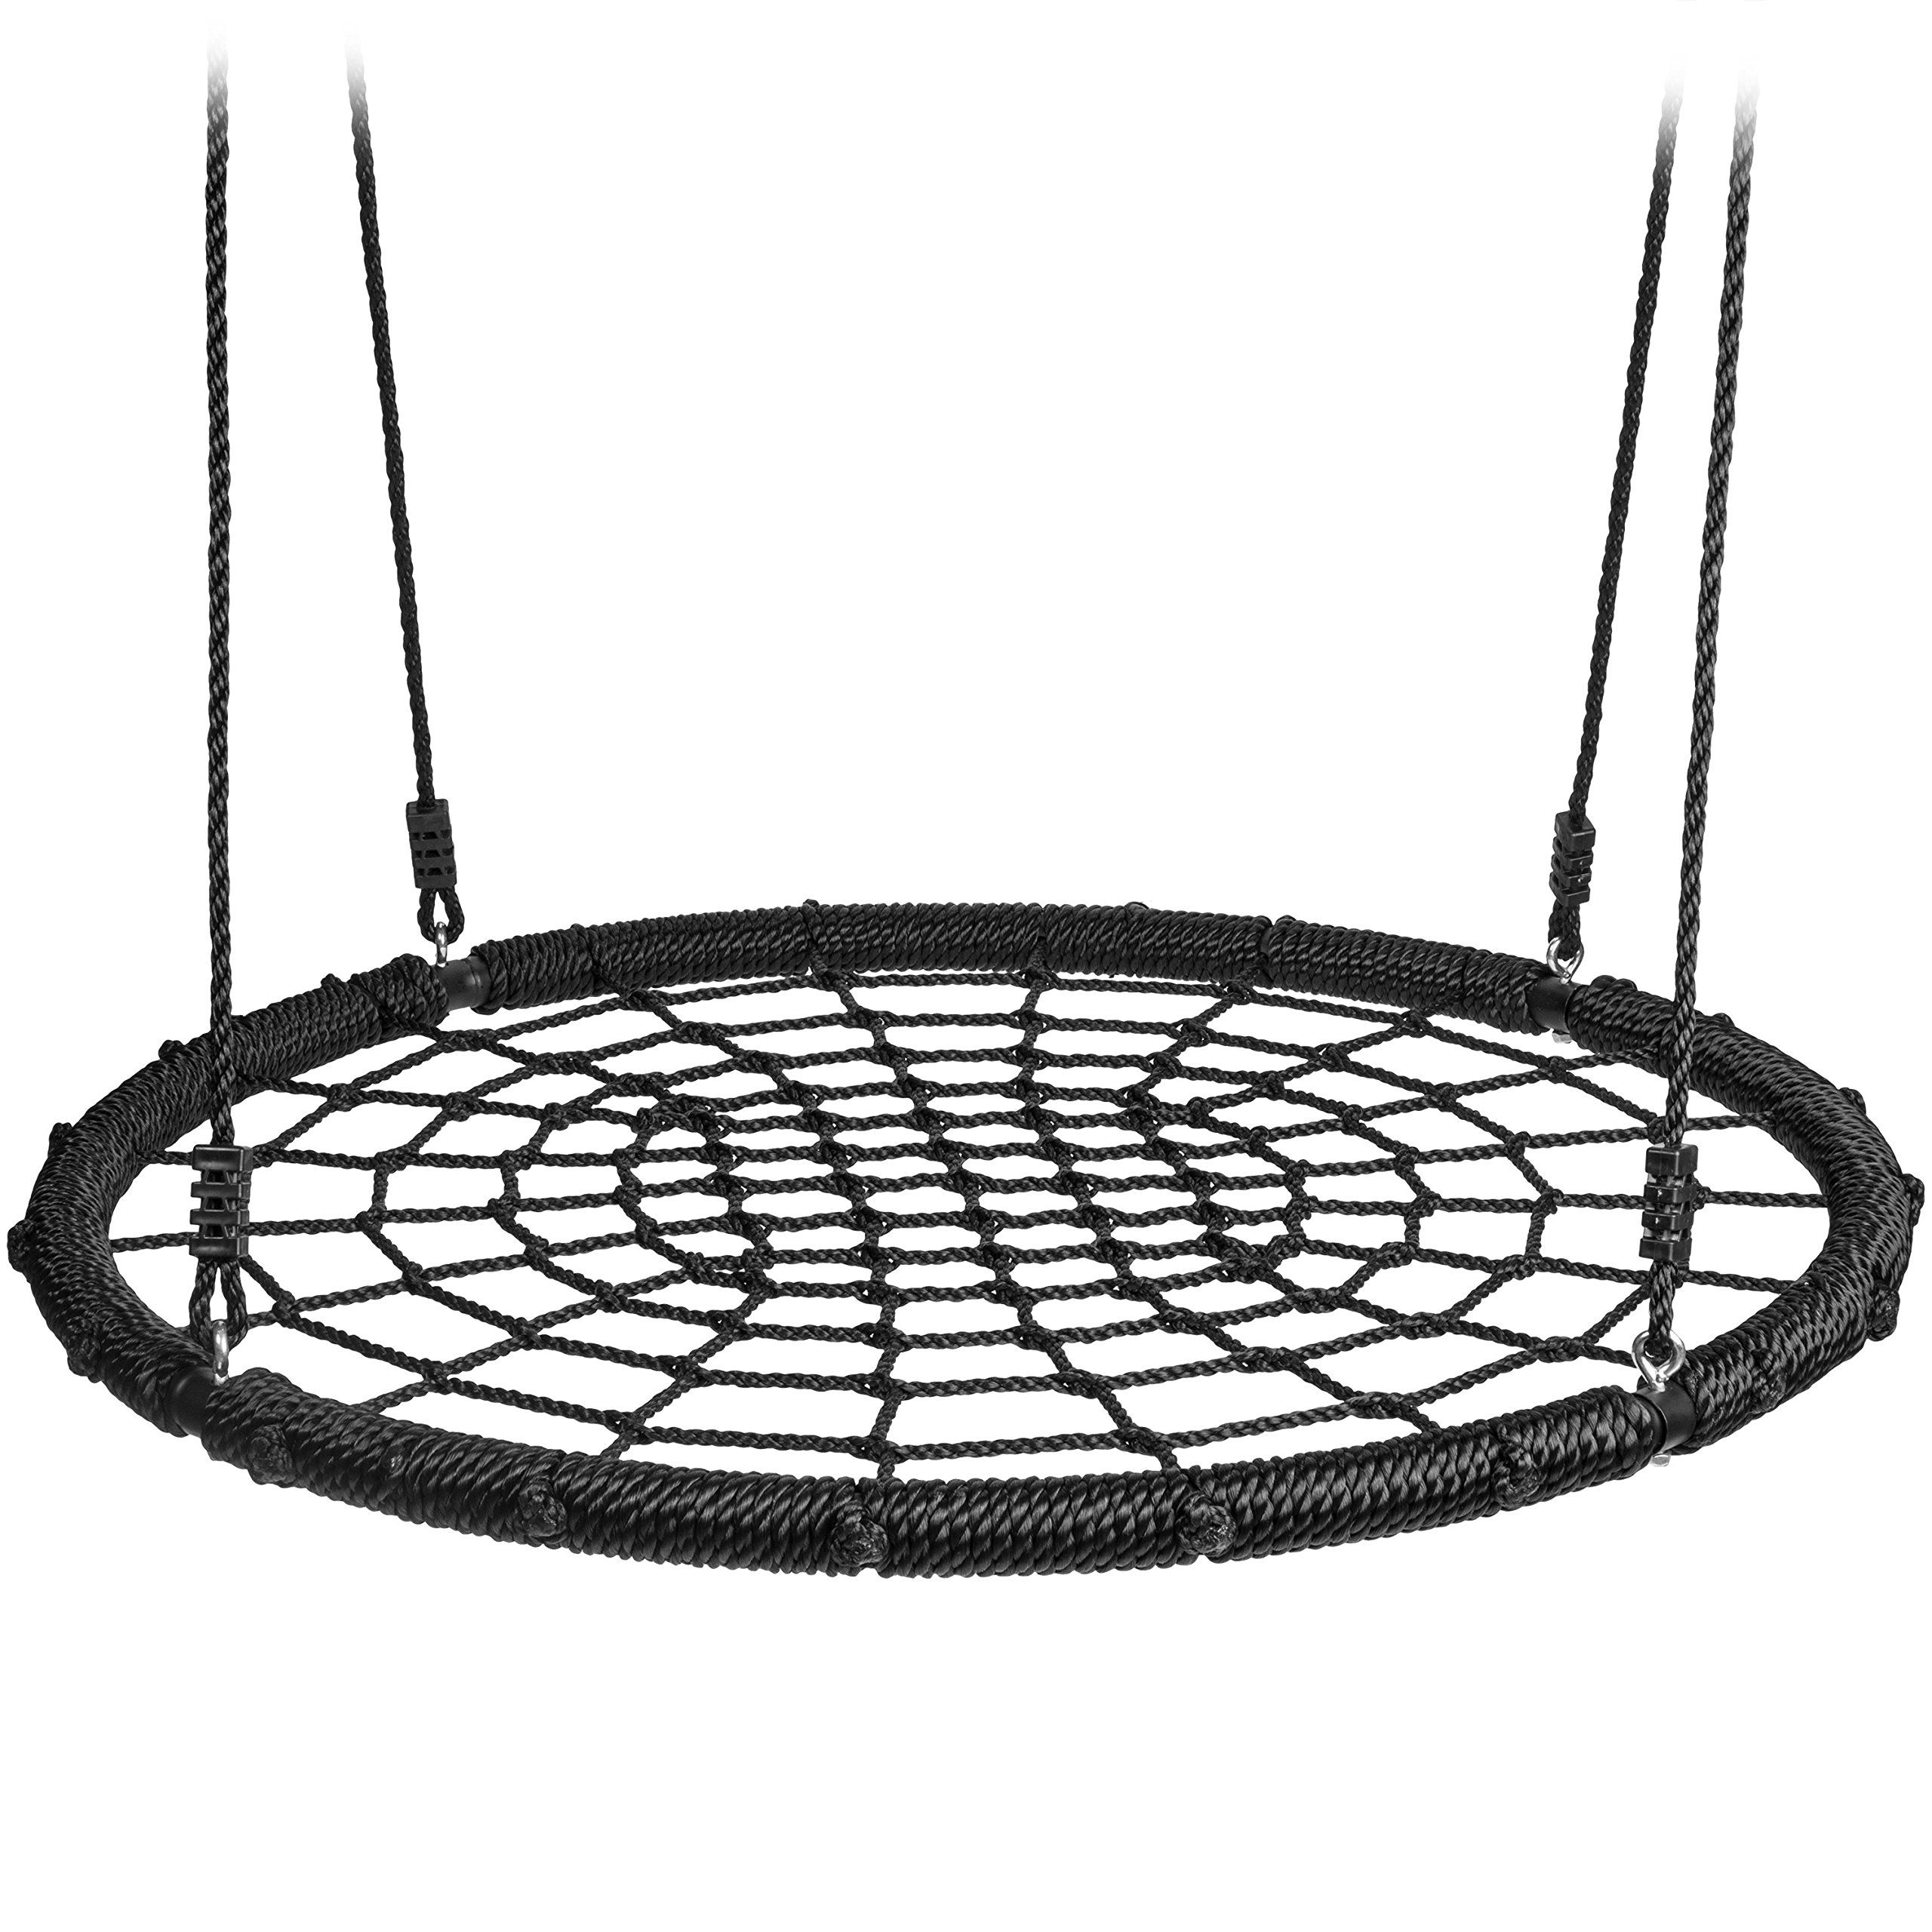 40 Inch Net Spider Web Round Swing Saucer Safety Rating Over 600 Pounds Heavy Duty Adjustable 6ft Pe Hanging Hanging Rope Pergola Pictures Swing Set Anchors